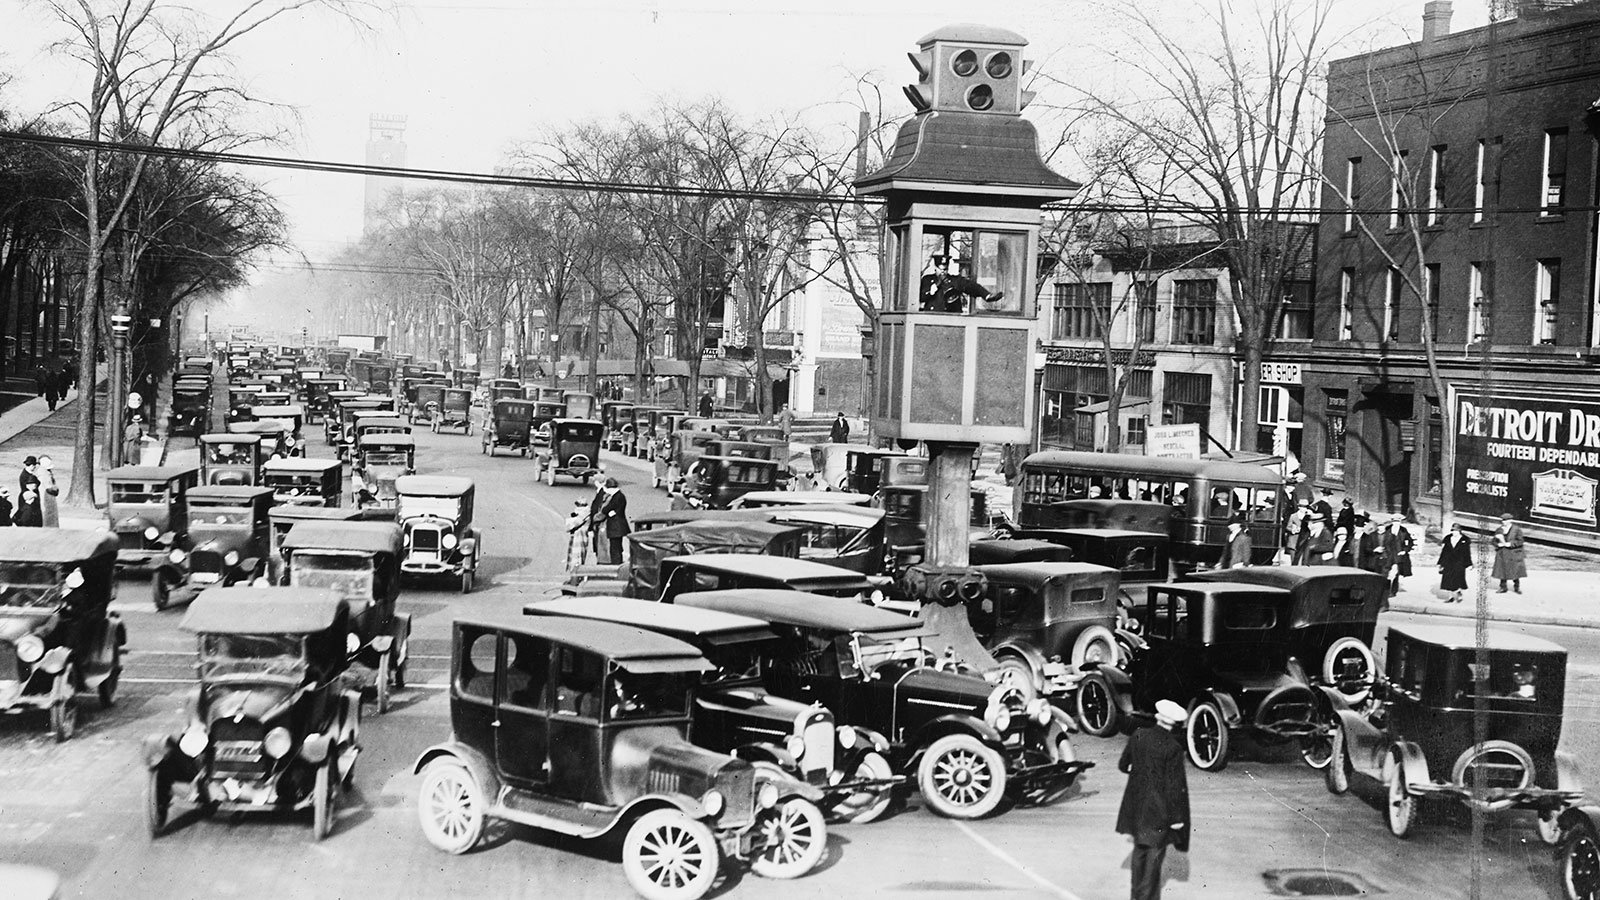 Traffic in Detroit, Michigan between 1915 and 1925